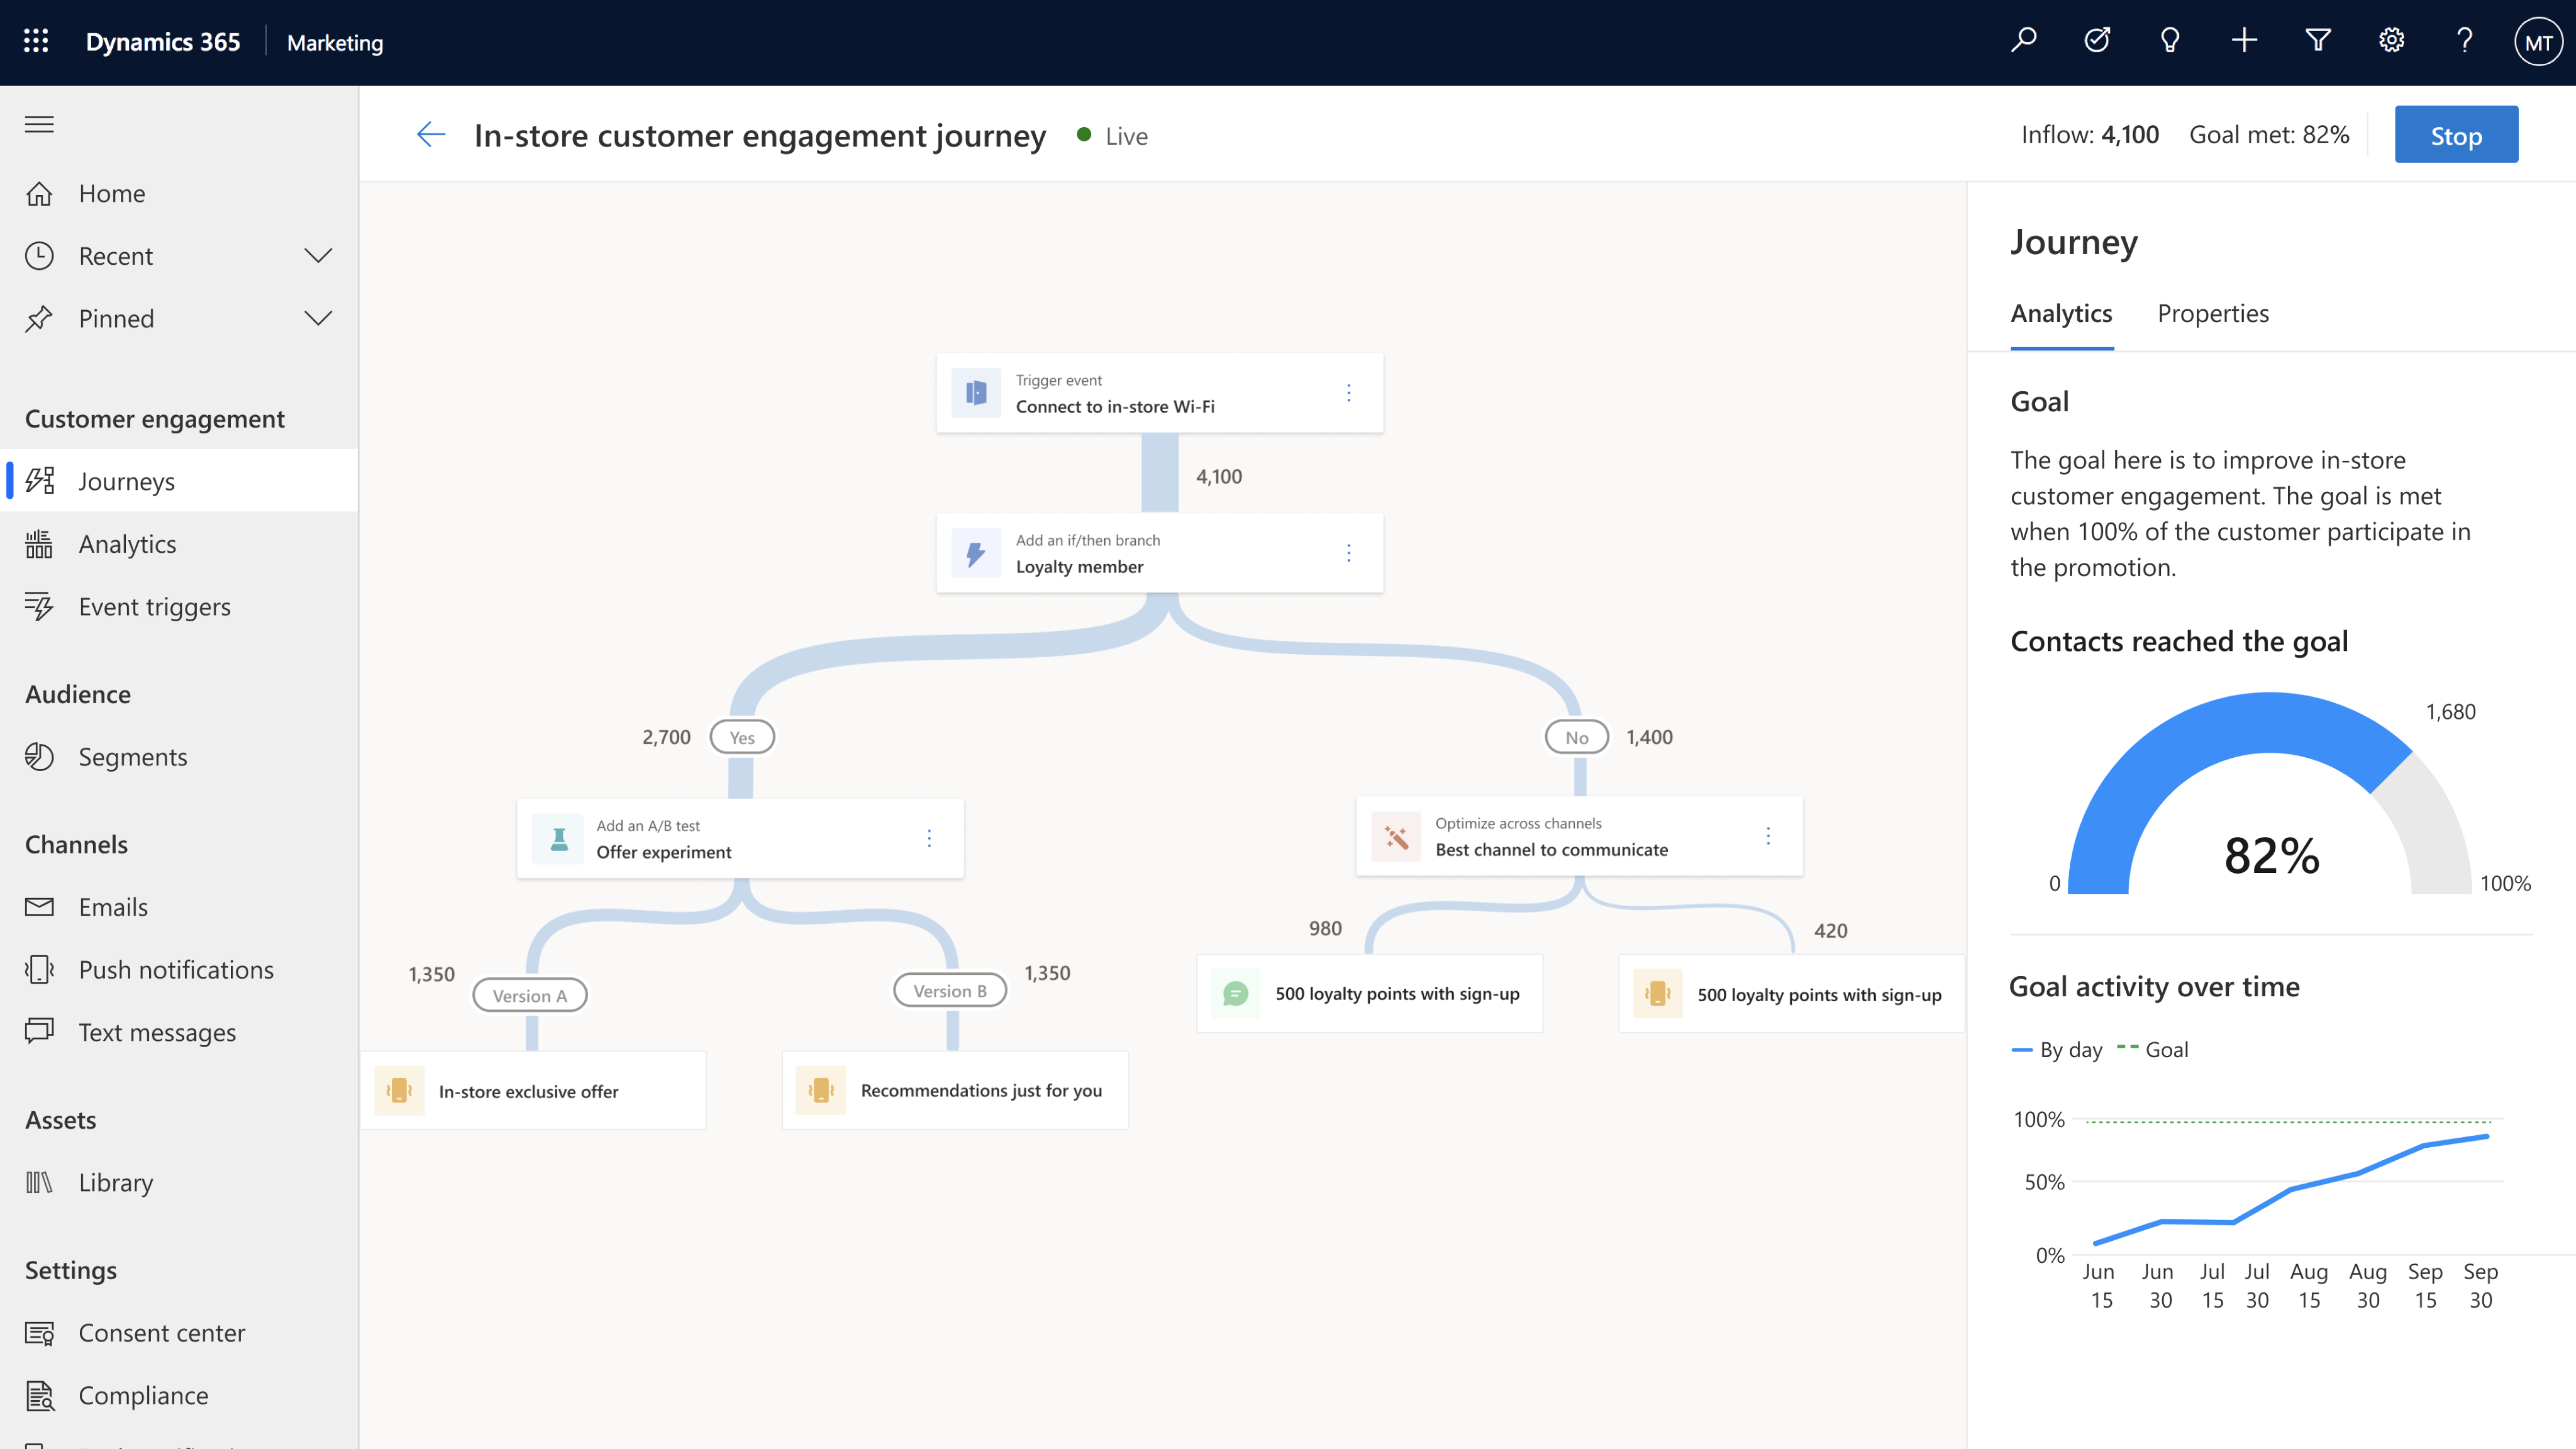 Dynamics 365 Marketing responds to customer actions during the journey.